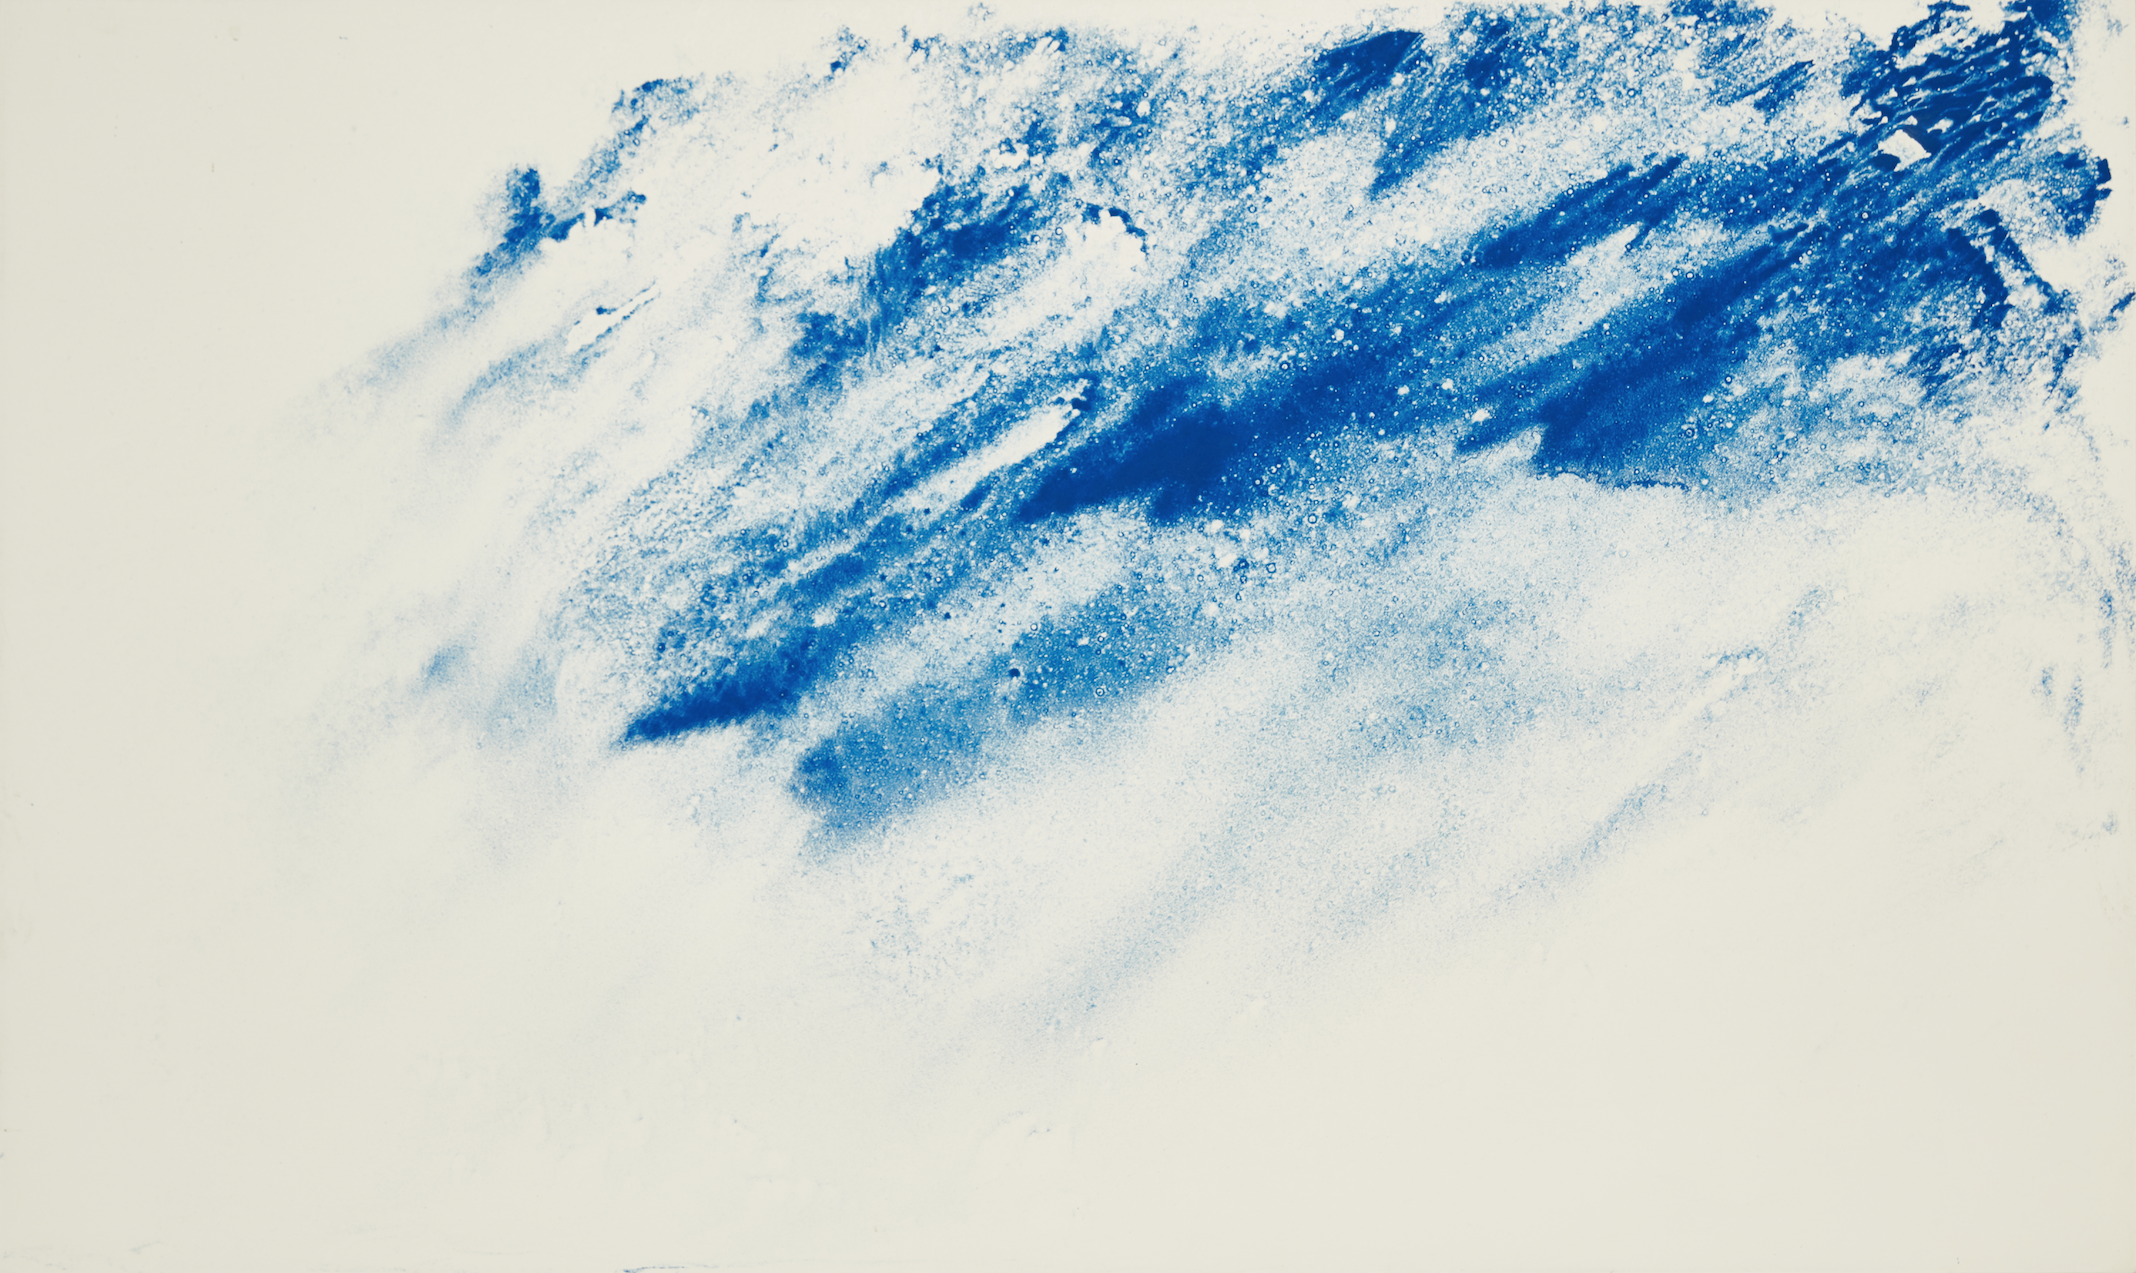 MakotoFujimura_Walking on Water-Waves Study, 2016.png